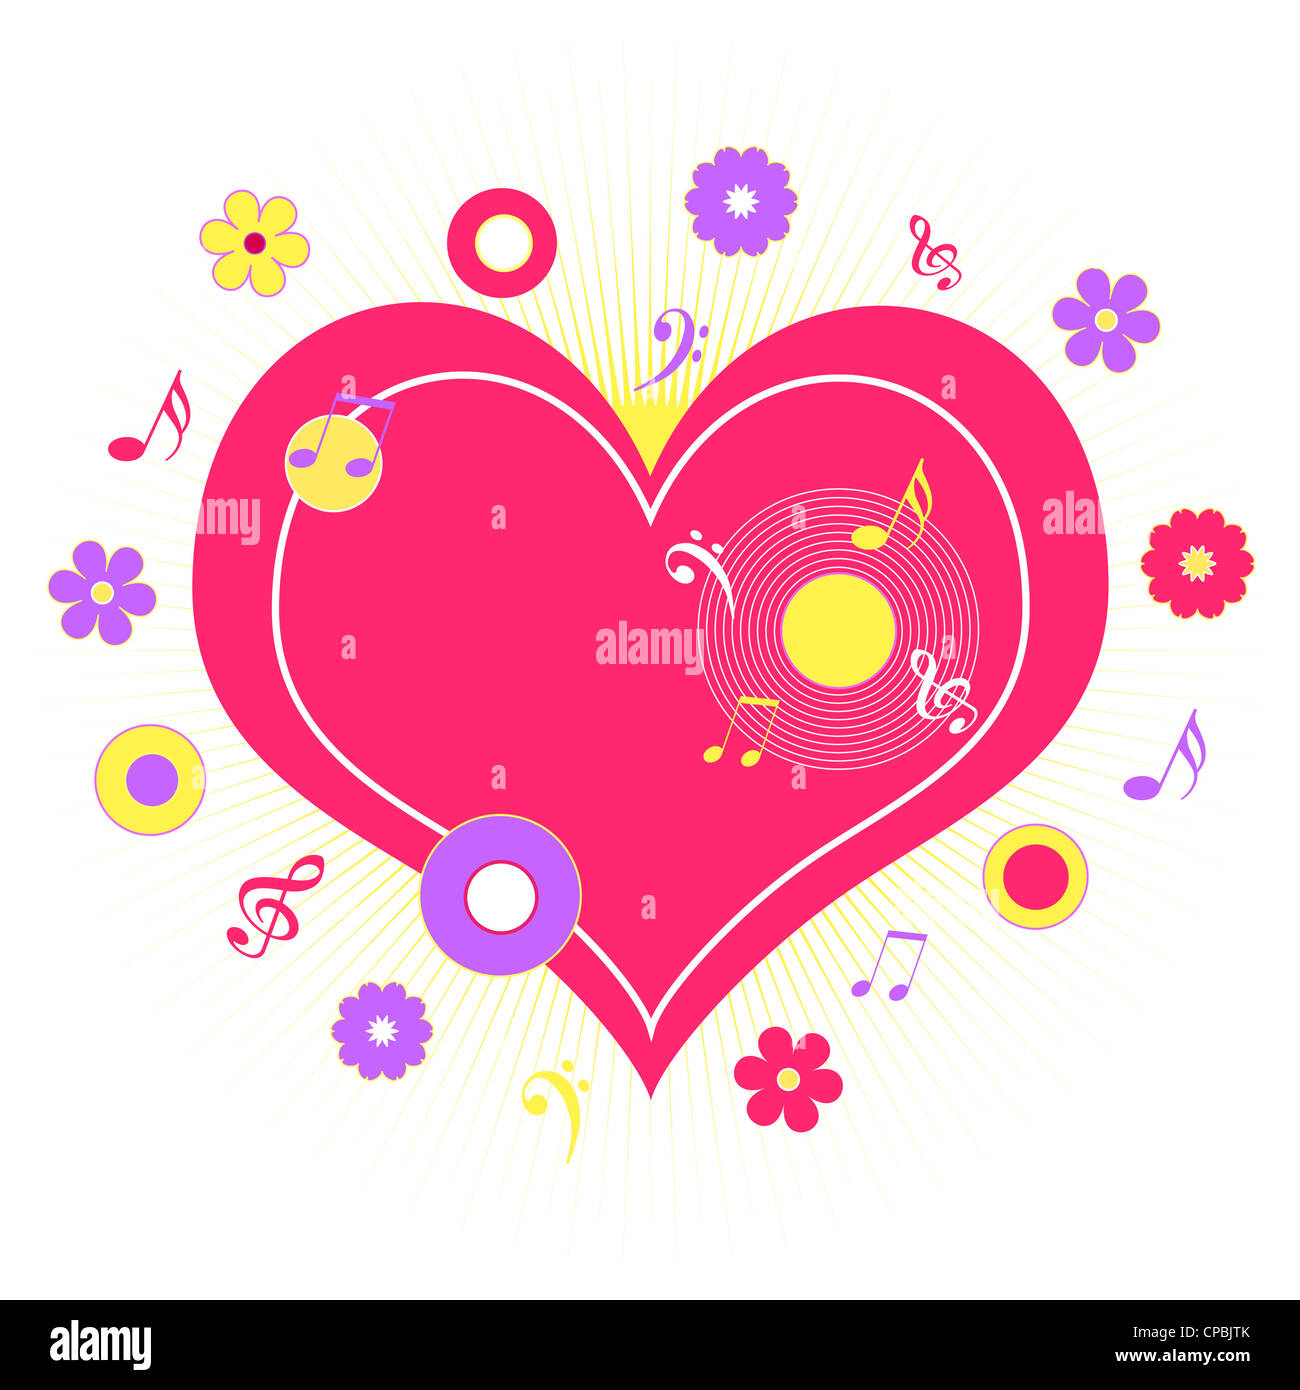 Pink heart with musical notes and flowers design Stock Photo